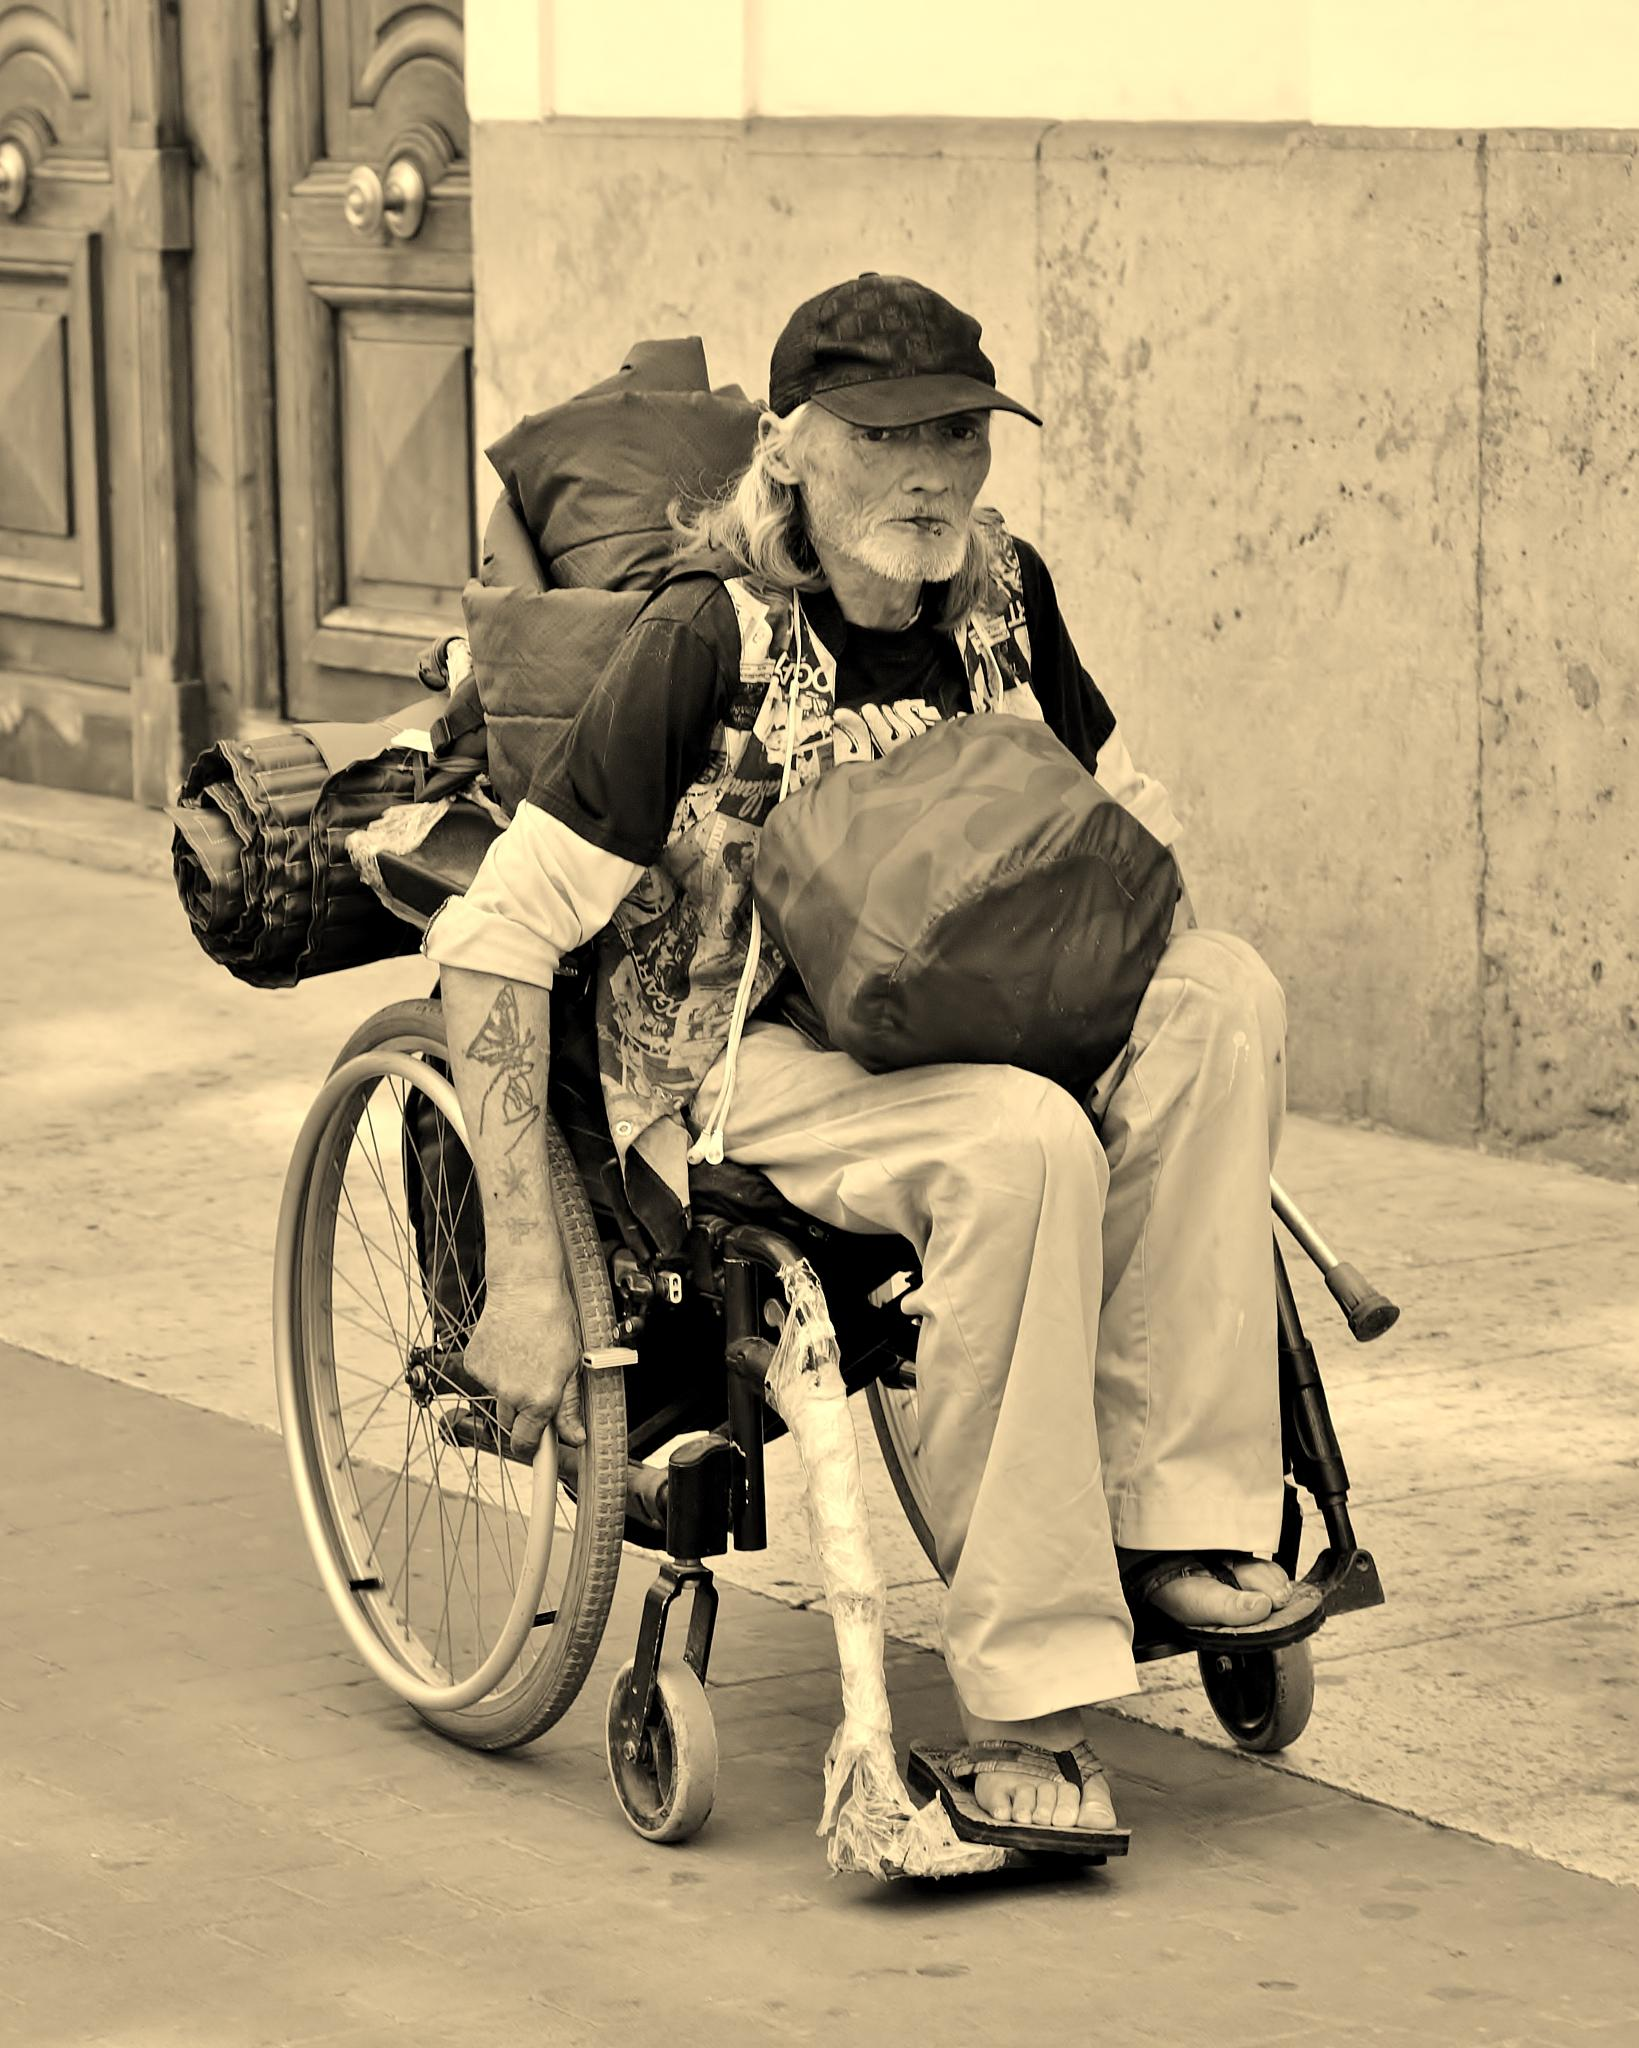 Independence - Wheelchair - Sepia by paul.hosker